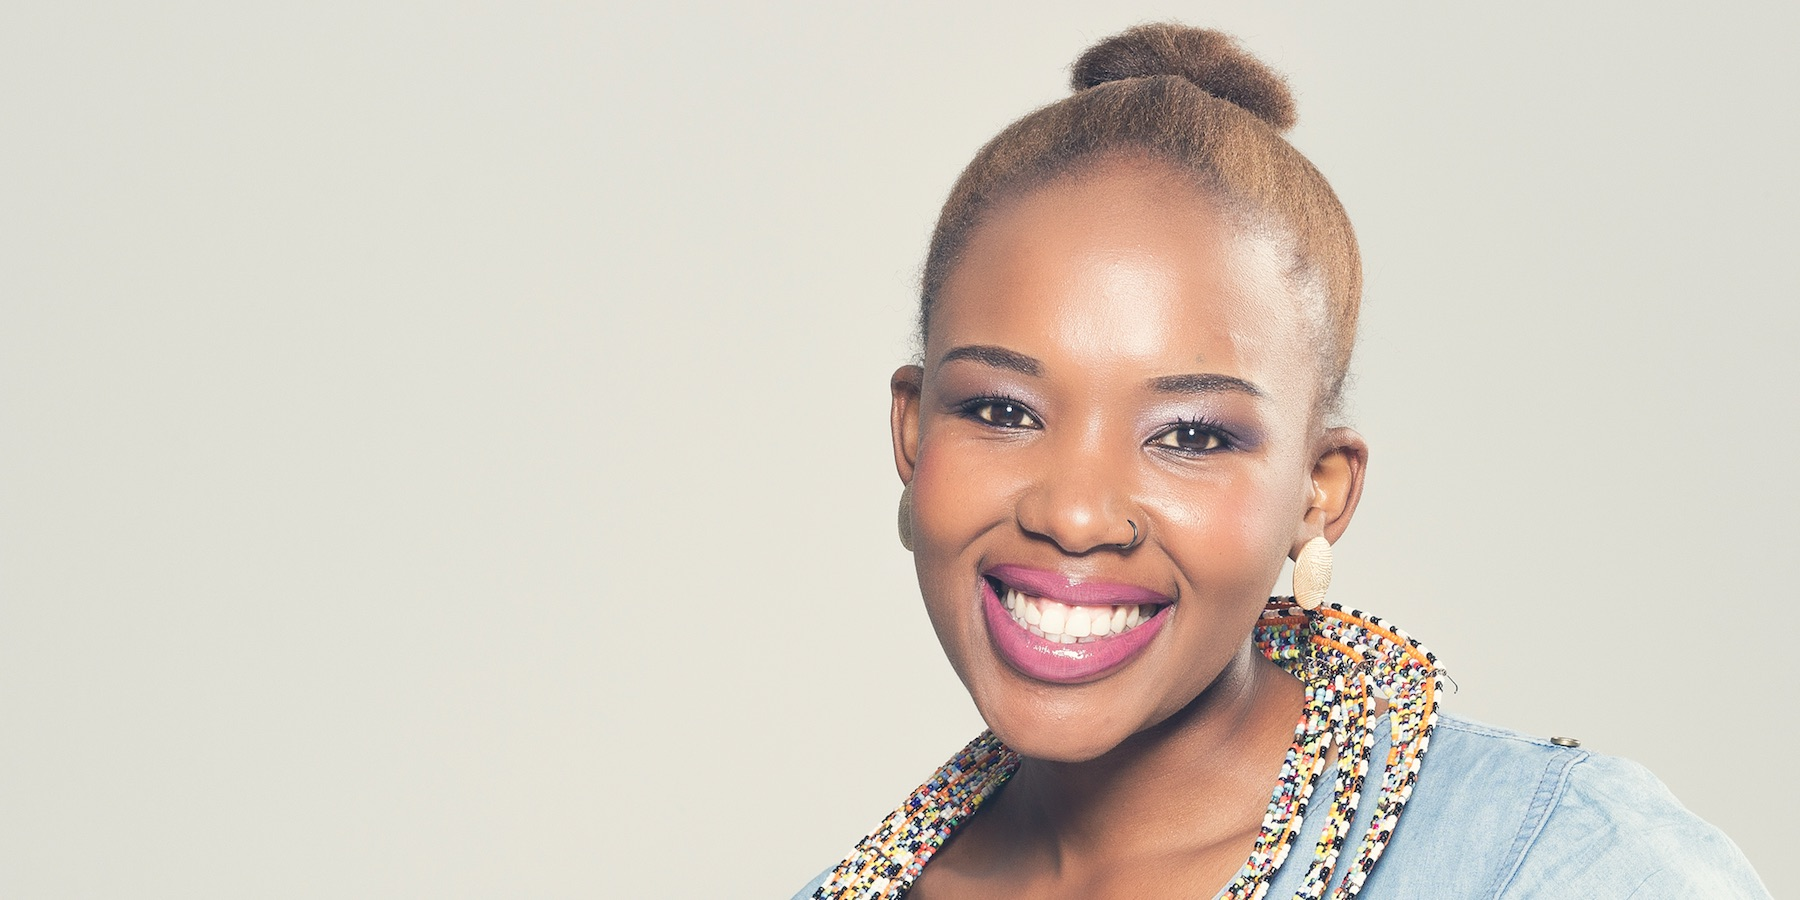 Sihle Hlophe  is the founder of  Passion Seed Communications  in South Africa